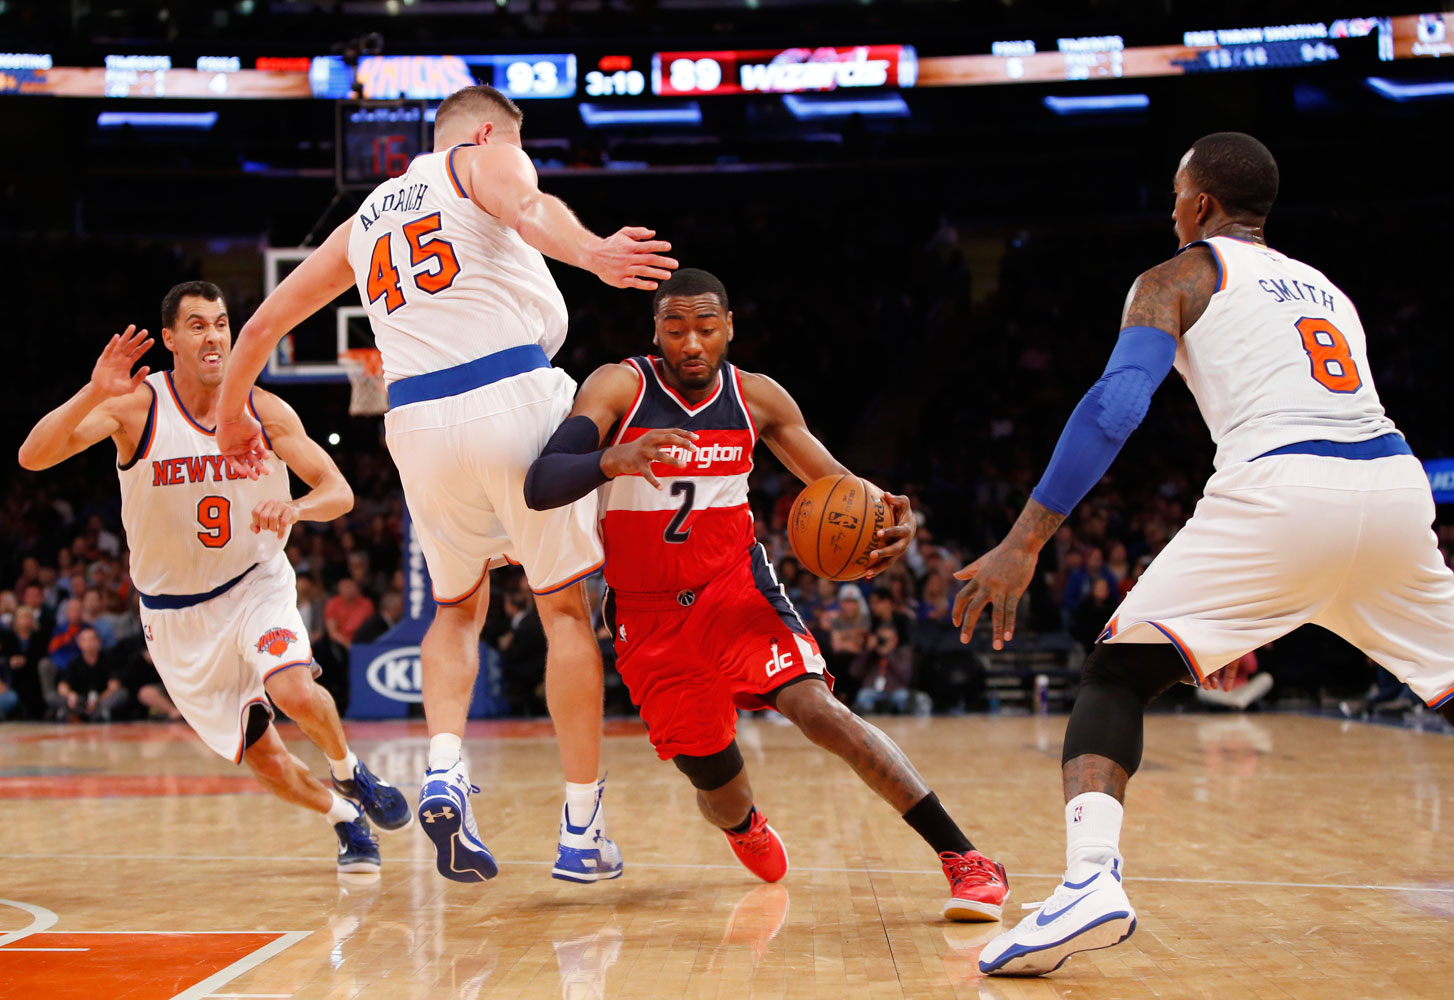 What to watch for in the NBA games this Christmas